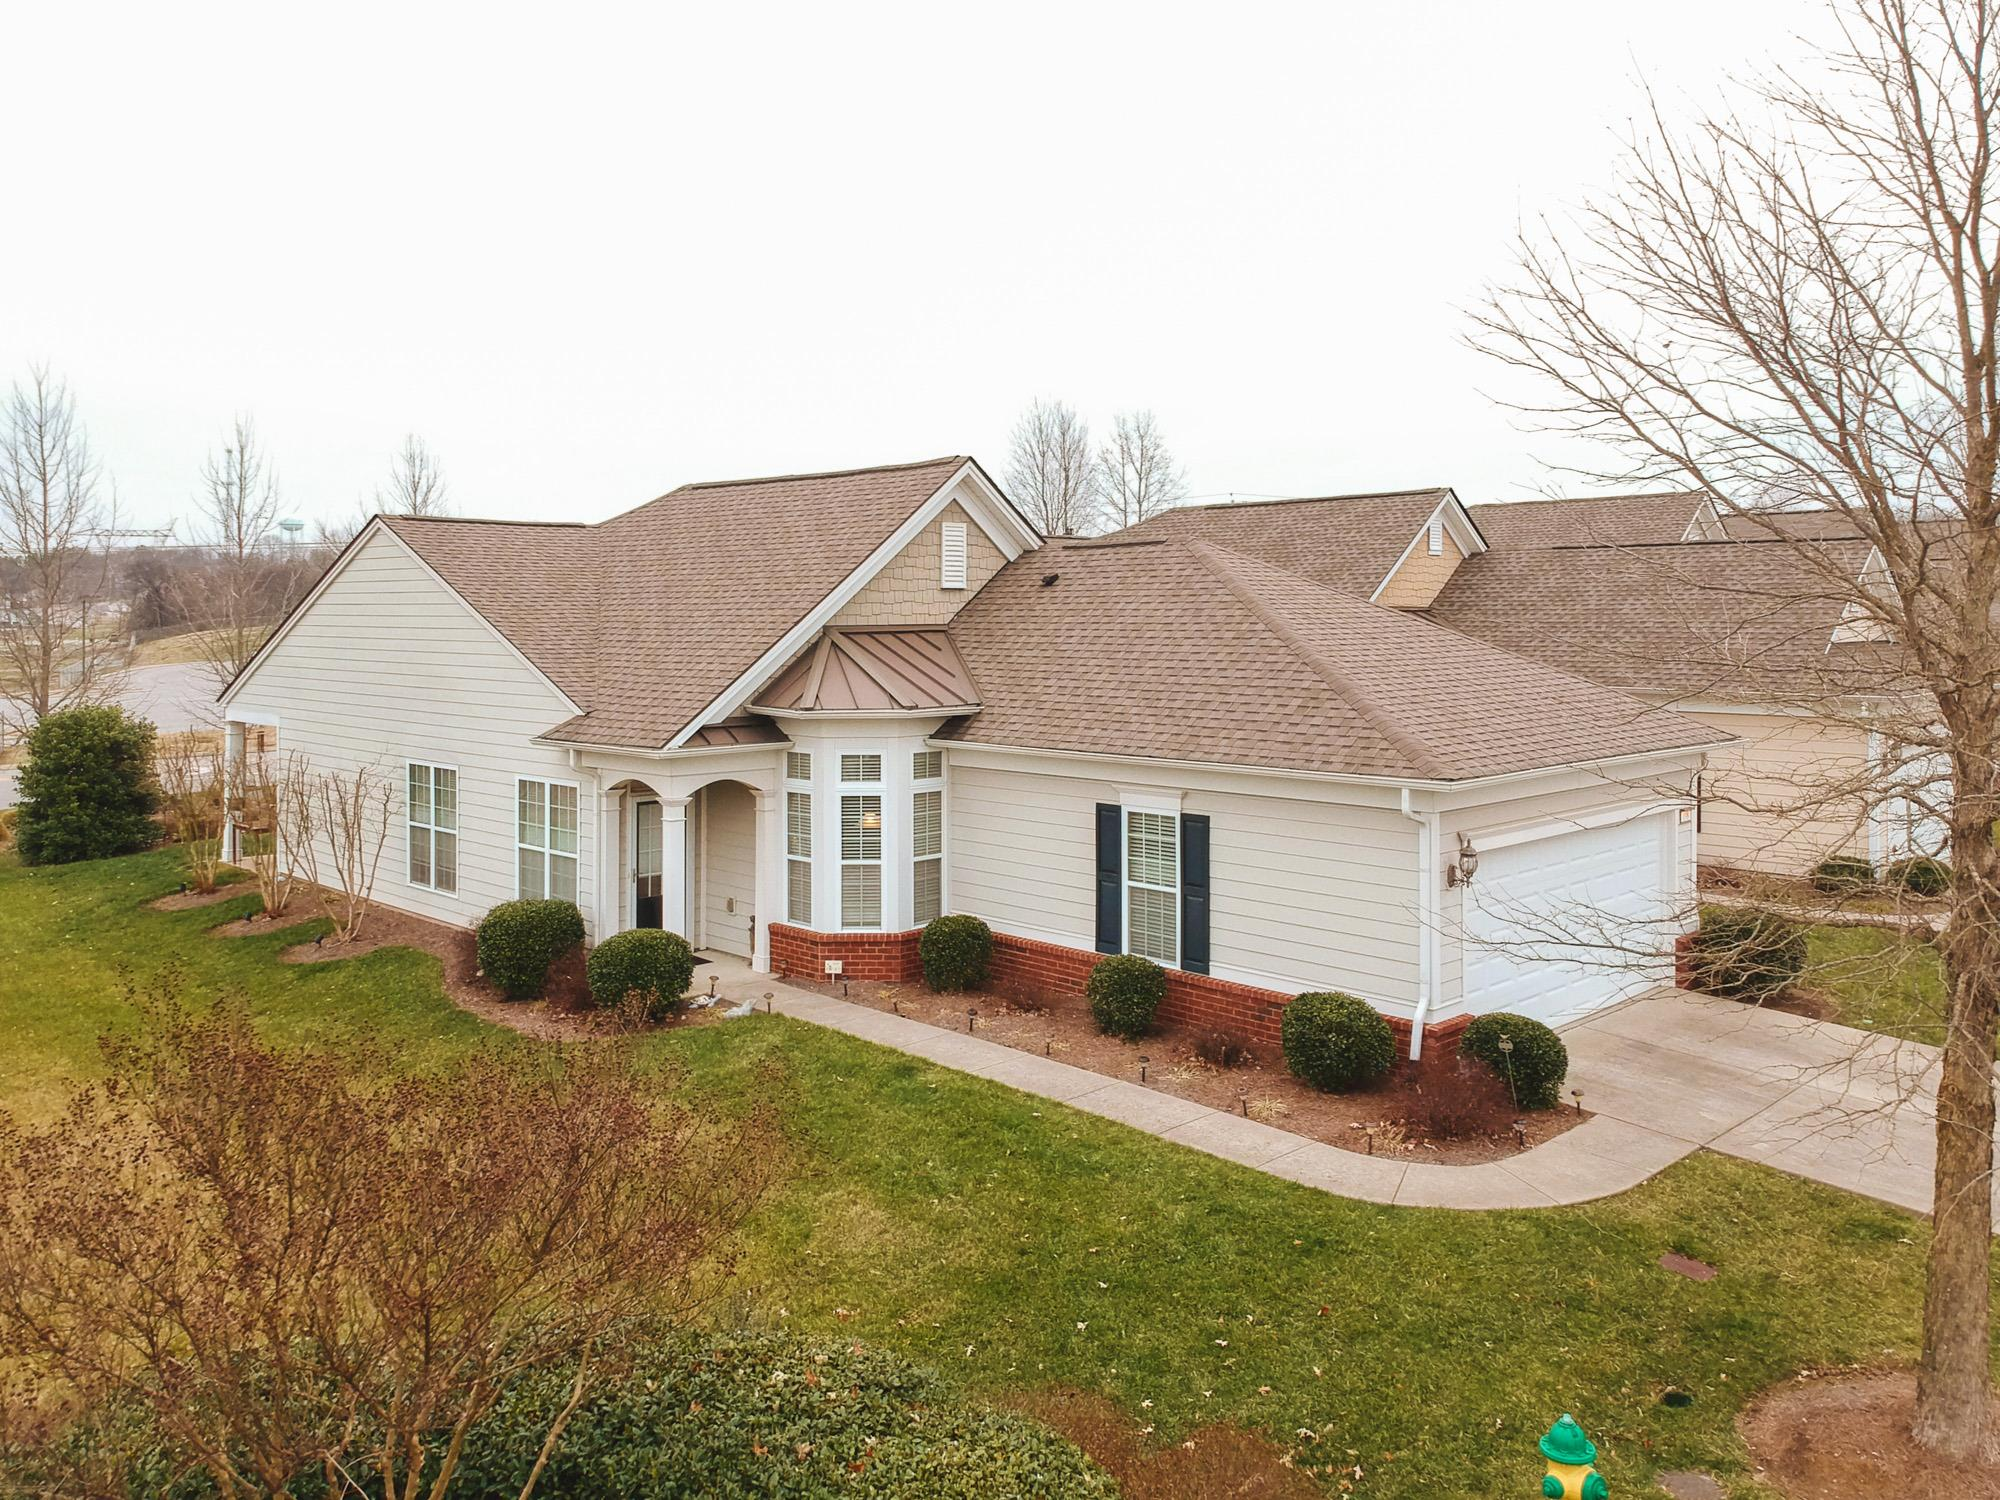 198 Old Towne Dr, Mount Juliet in Wilson County County, TN 37122 Home for Sale